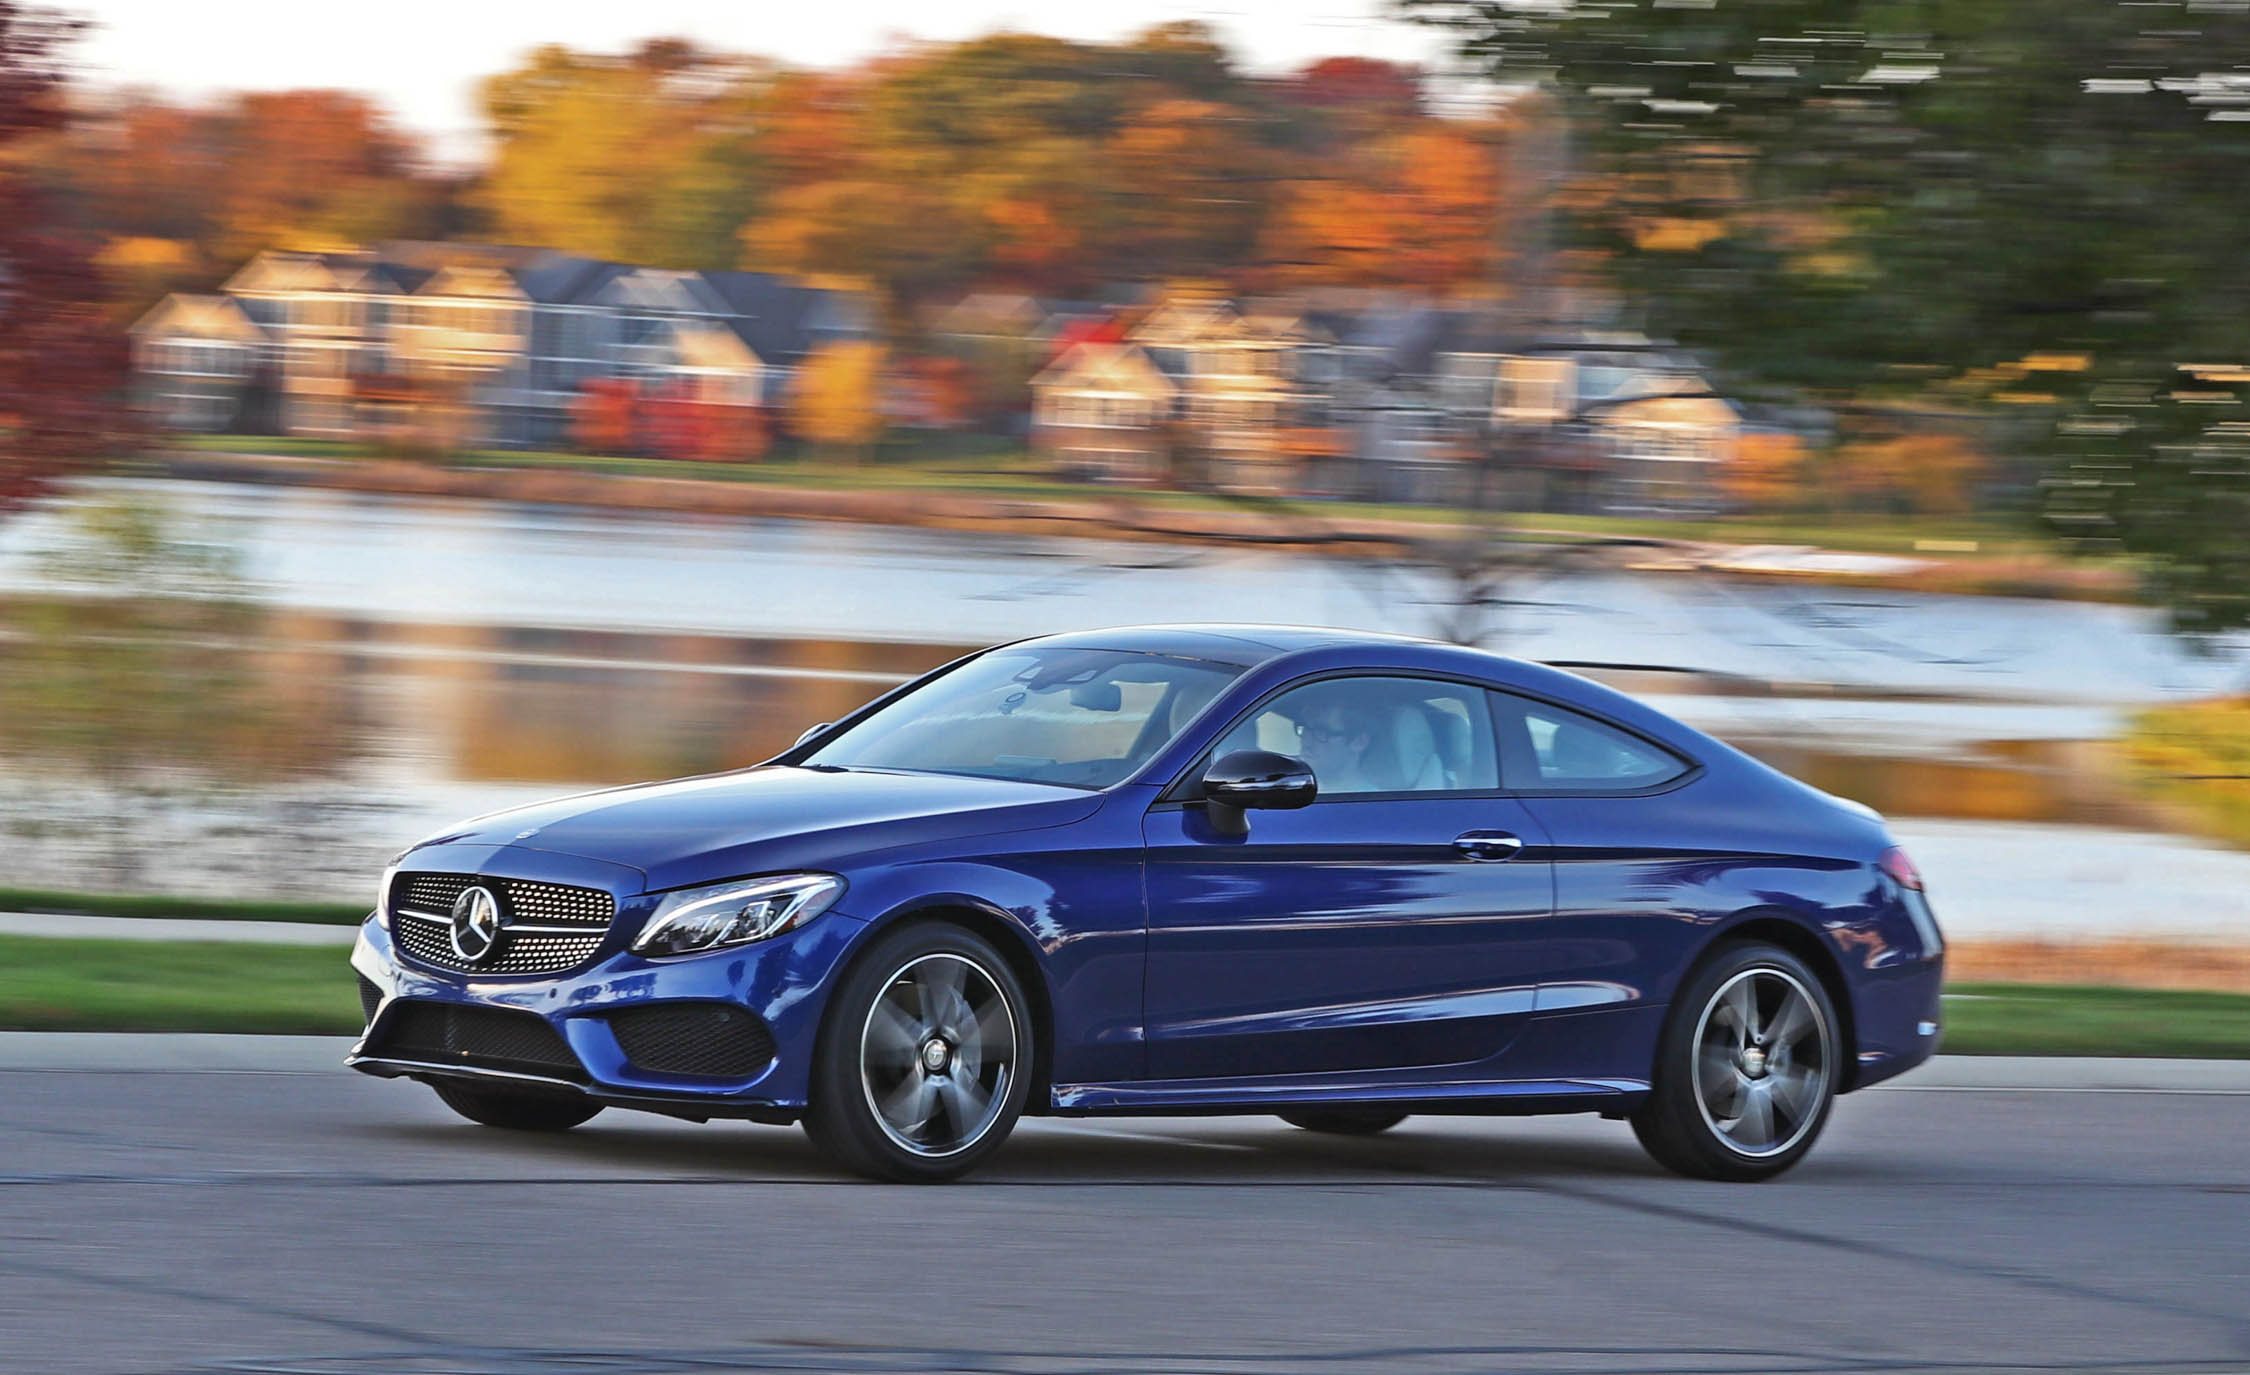 Featured Image of 2017 Mercedes Benz C300 4MATIC Coupe